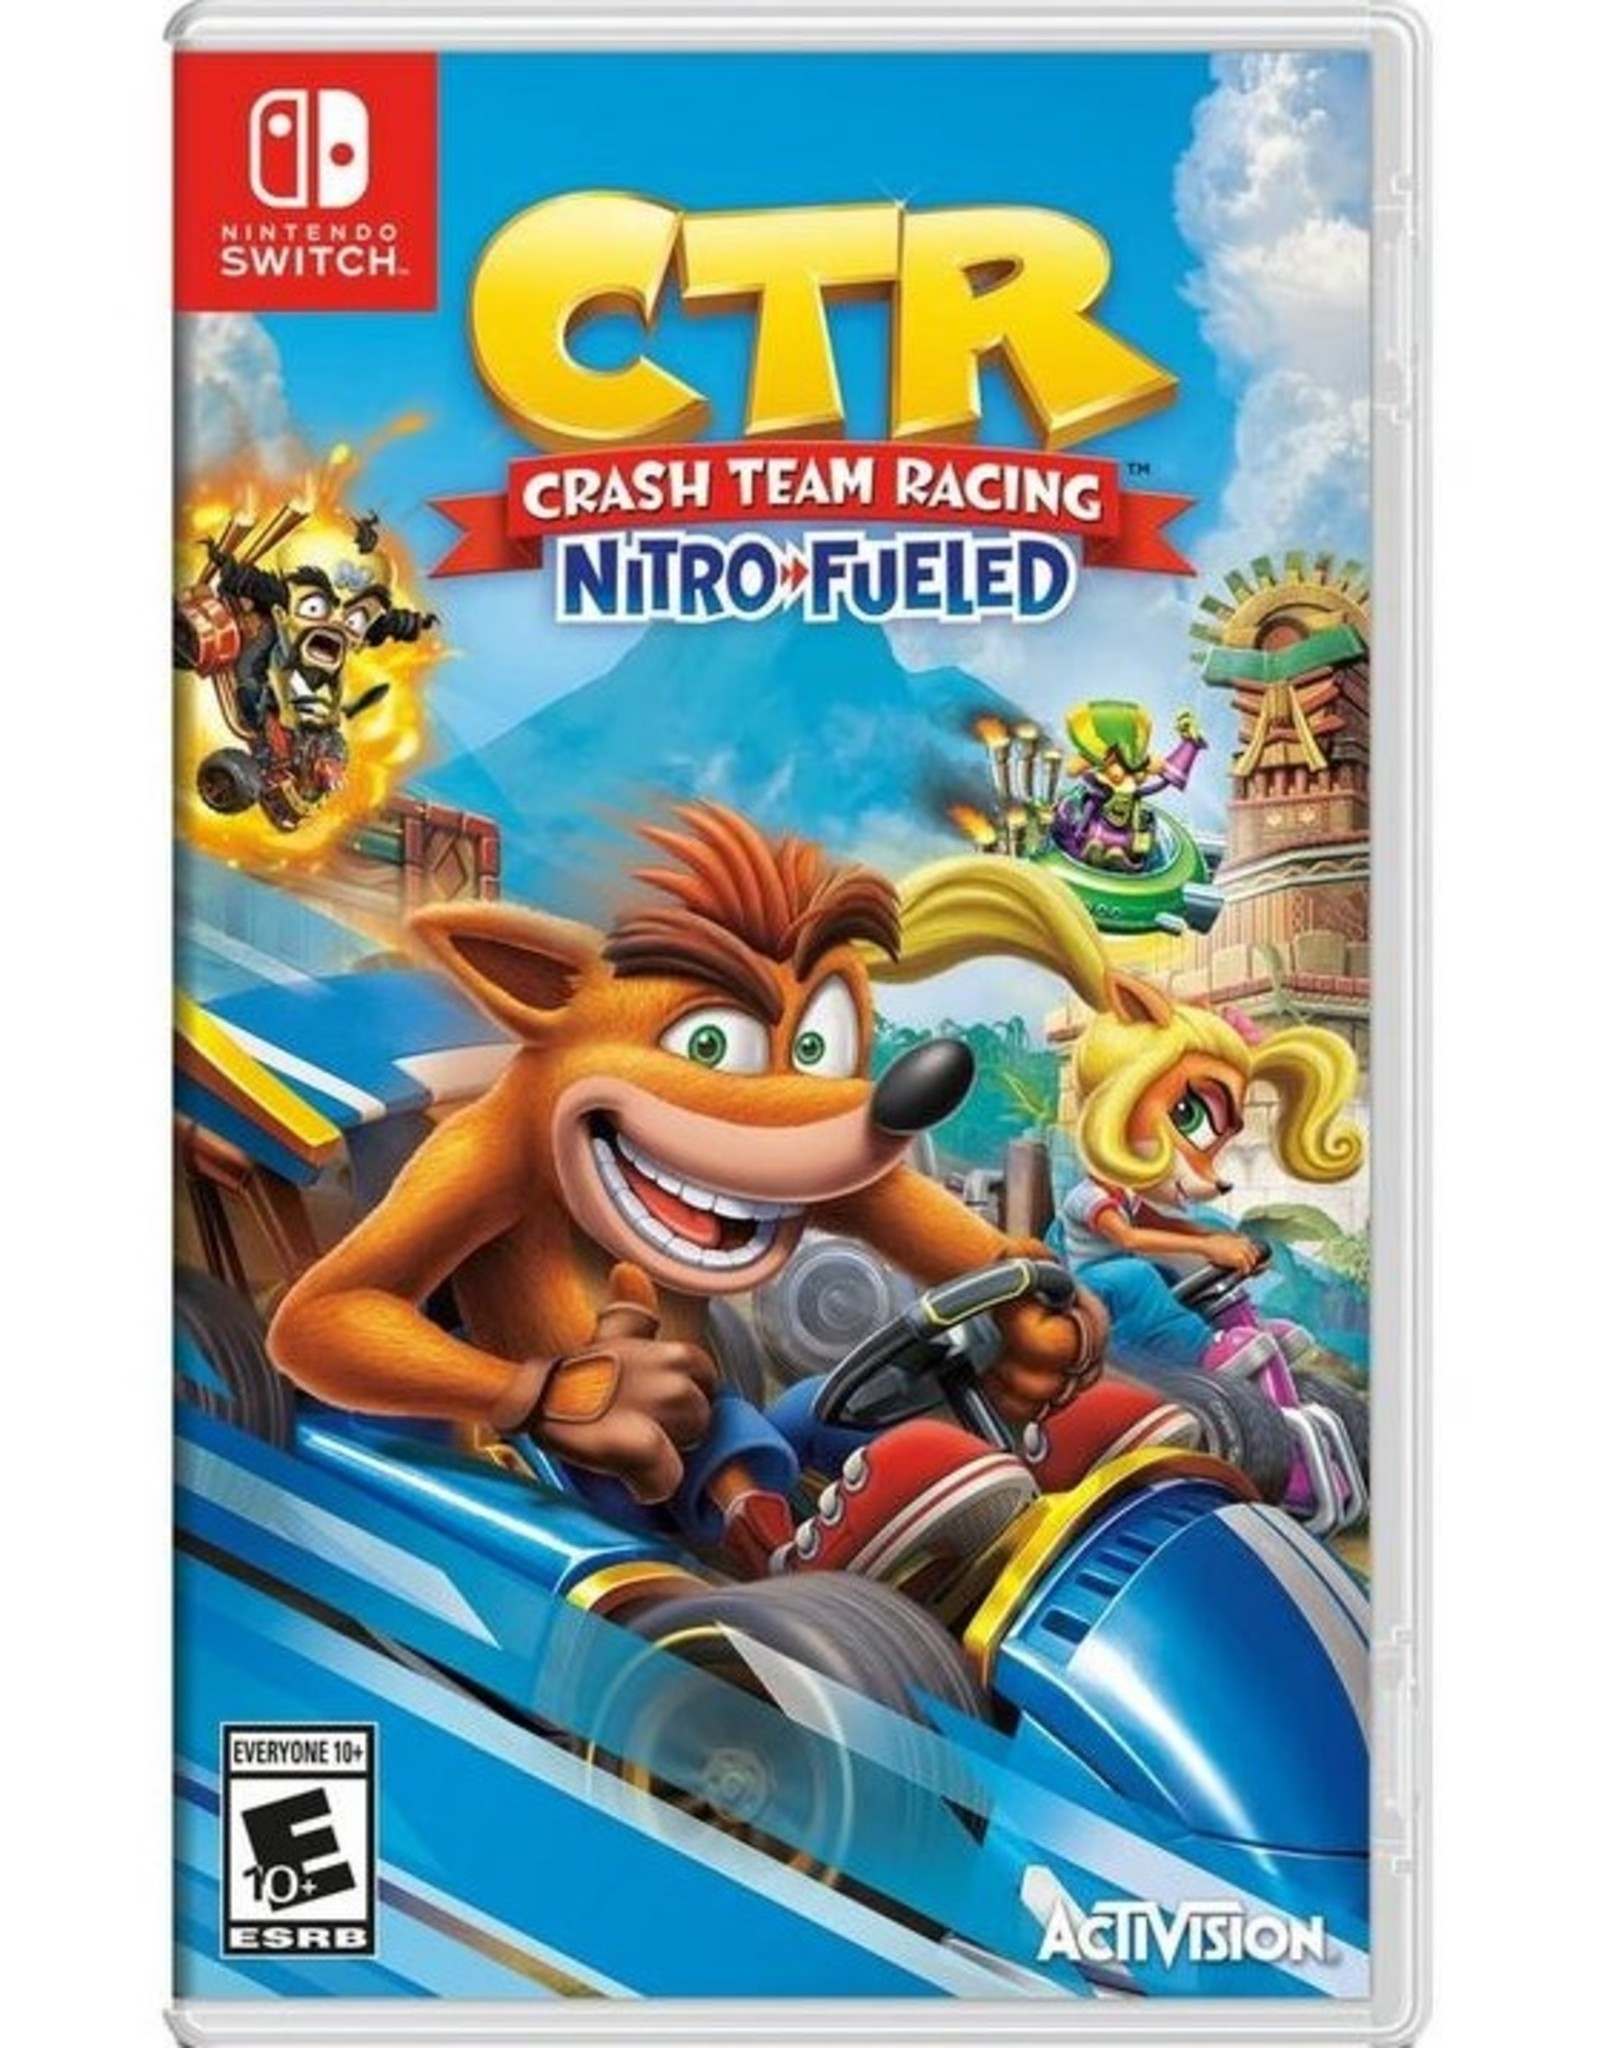 Crash Team Racing Nitro-Fueled - N-SWITCH DIGITAL